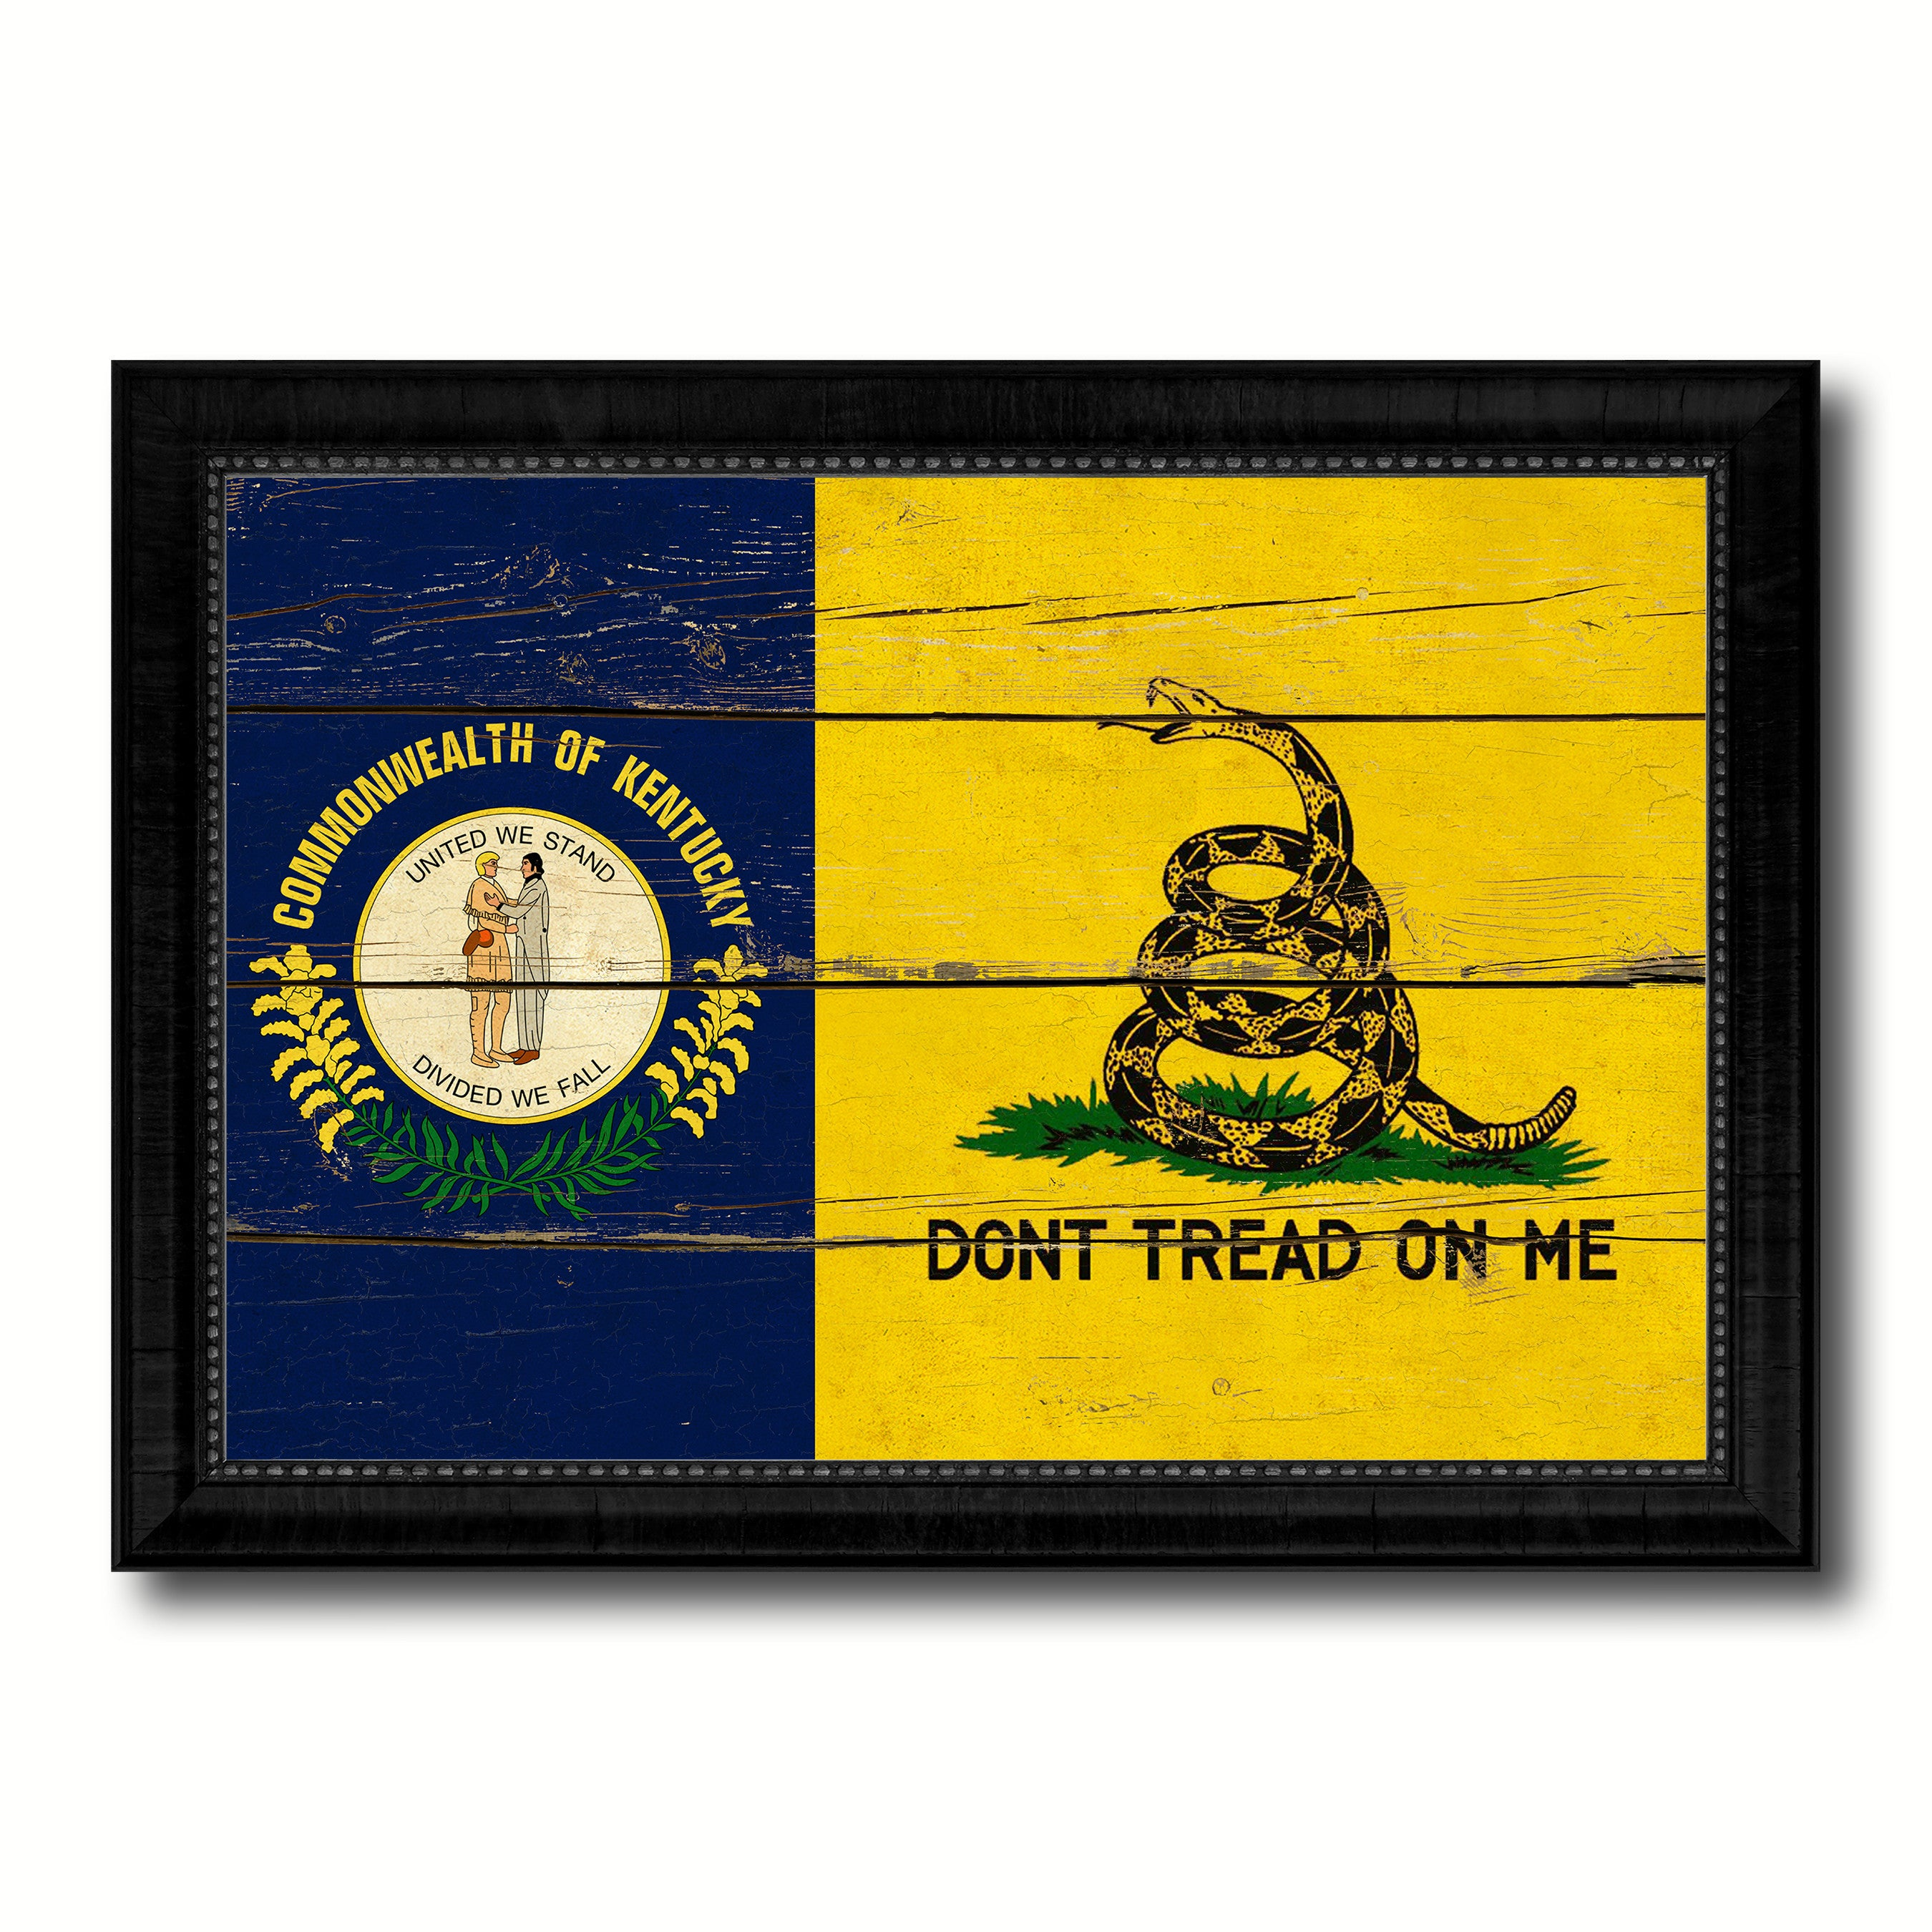 Gadsden Don't Tread On Me Tea Party Kentucky State Military Flag Vintage Canvas Print with Black Picture Frame Home Decor Wall Art Decoration Gift Ideas